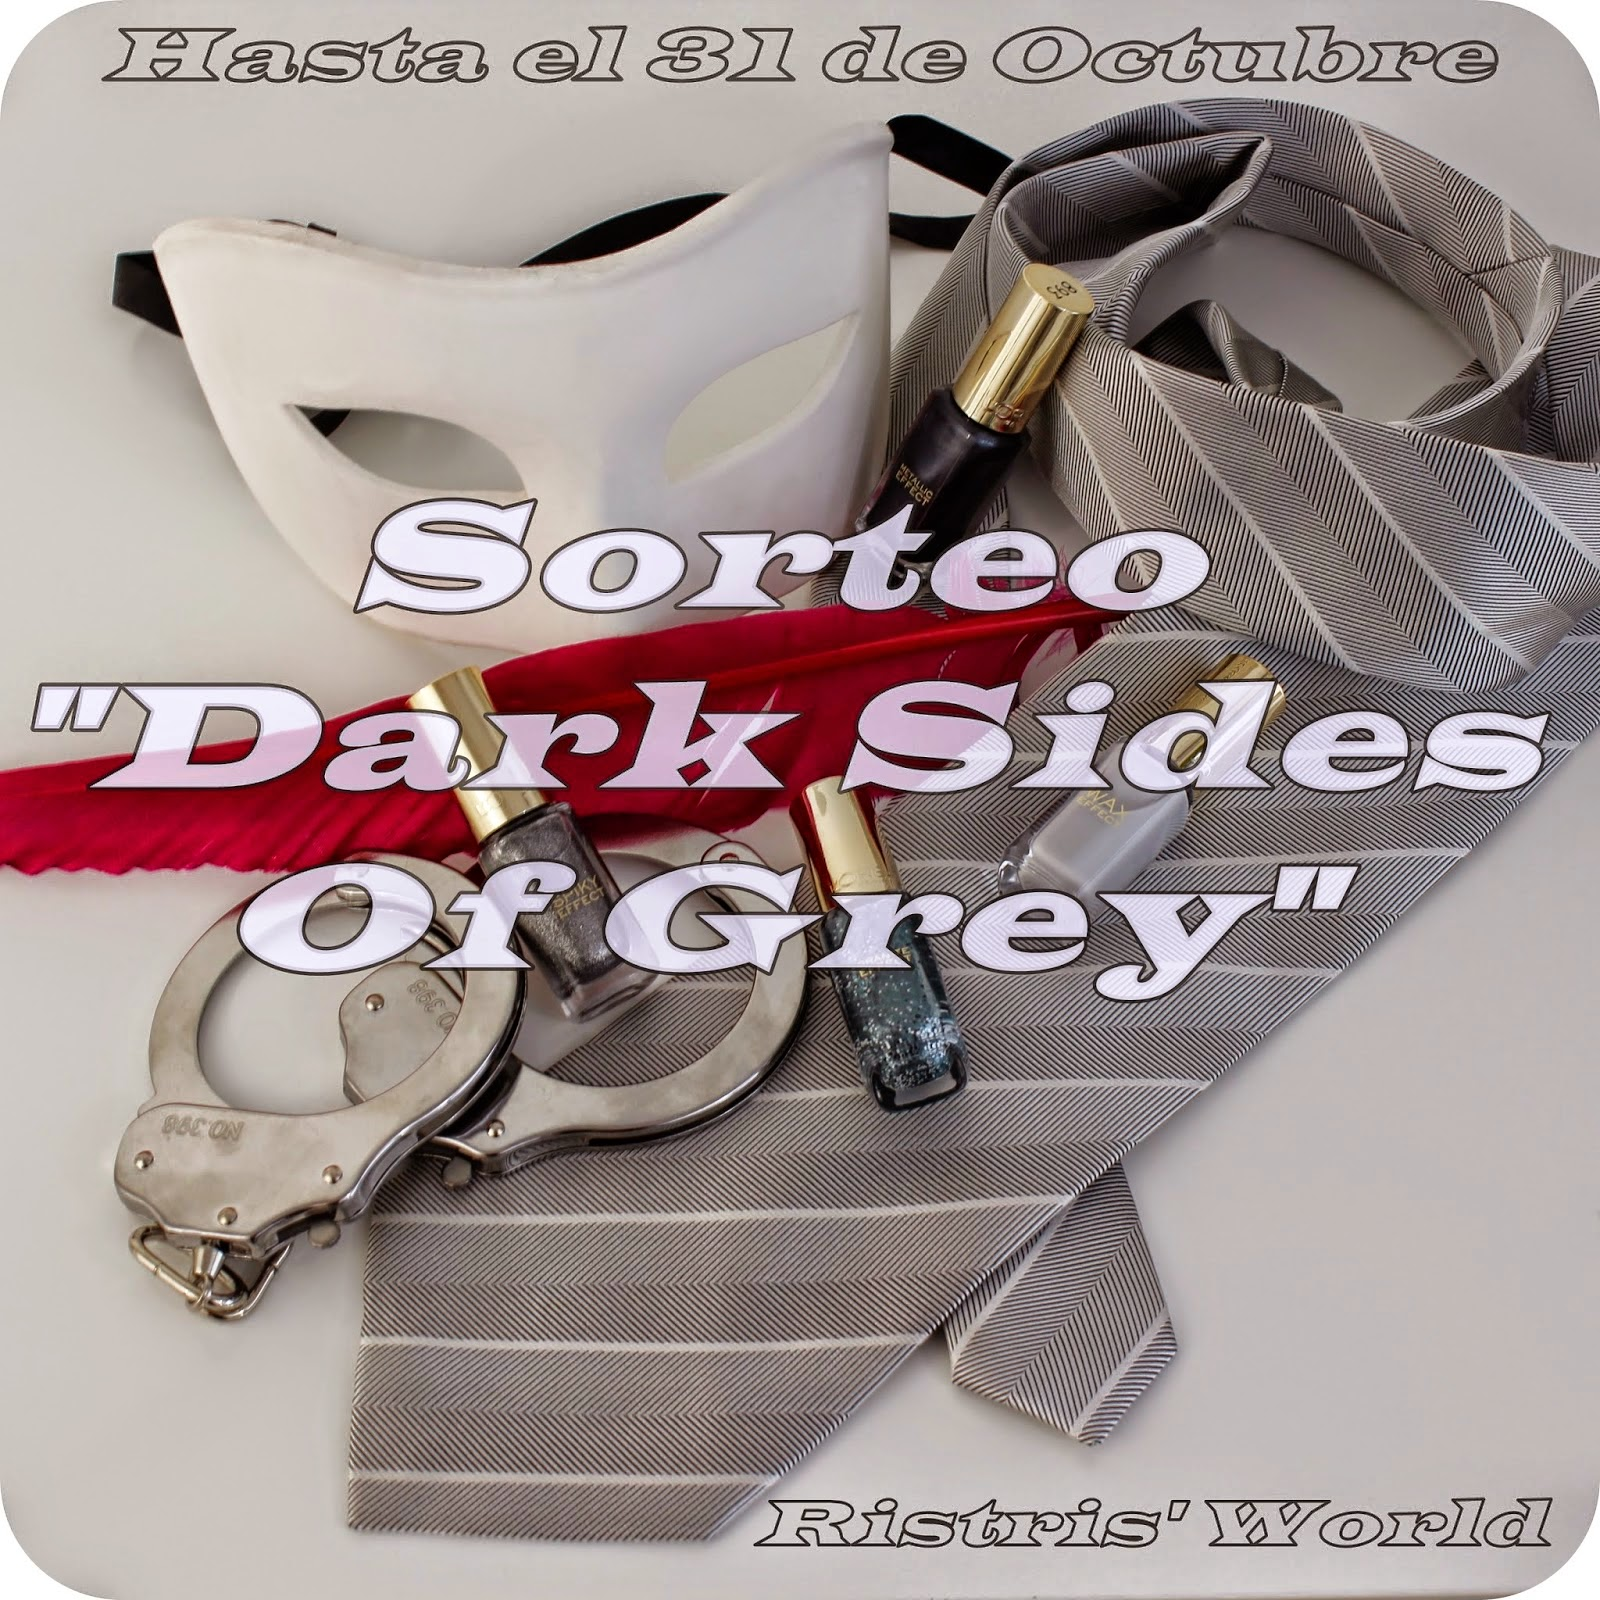 Sorteo DArk side of Grey